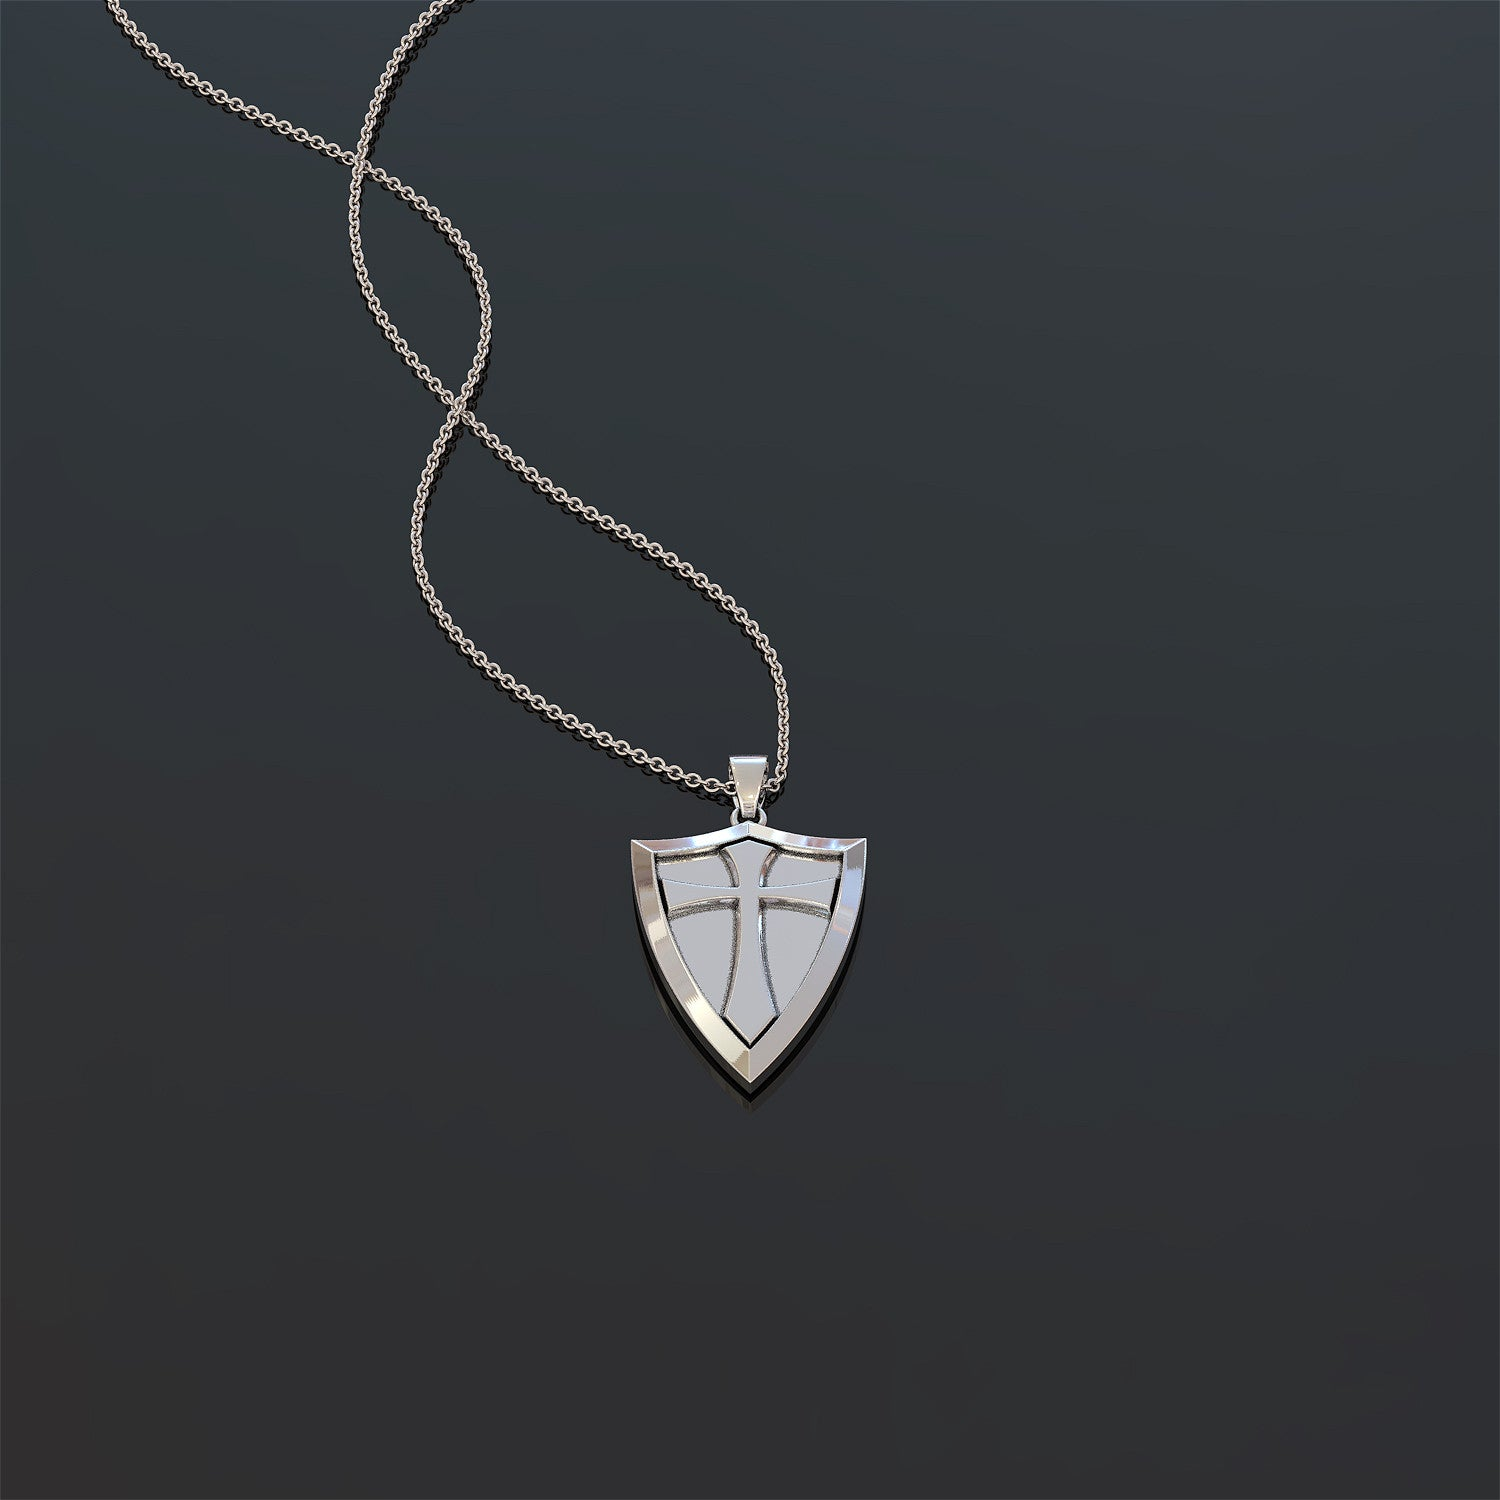 Crusader Cross Shield Pendant Necklace